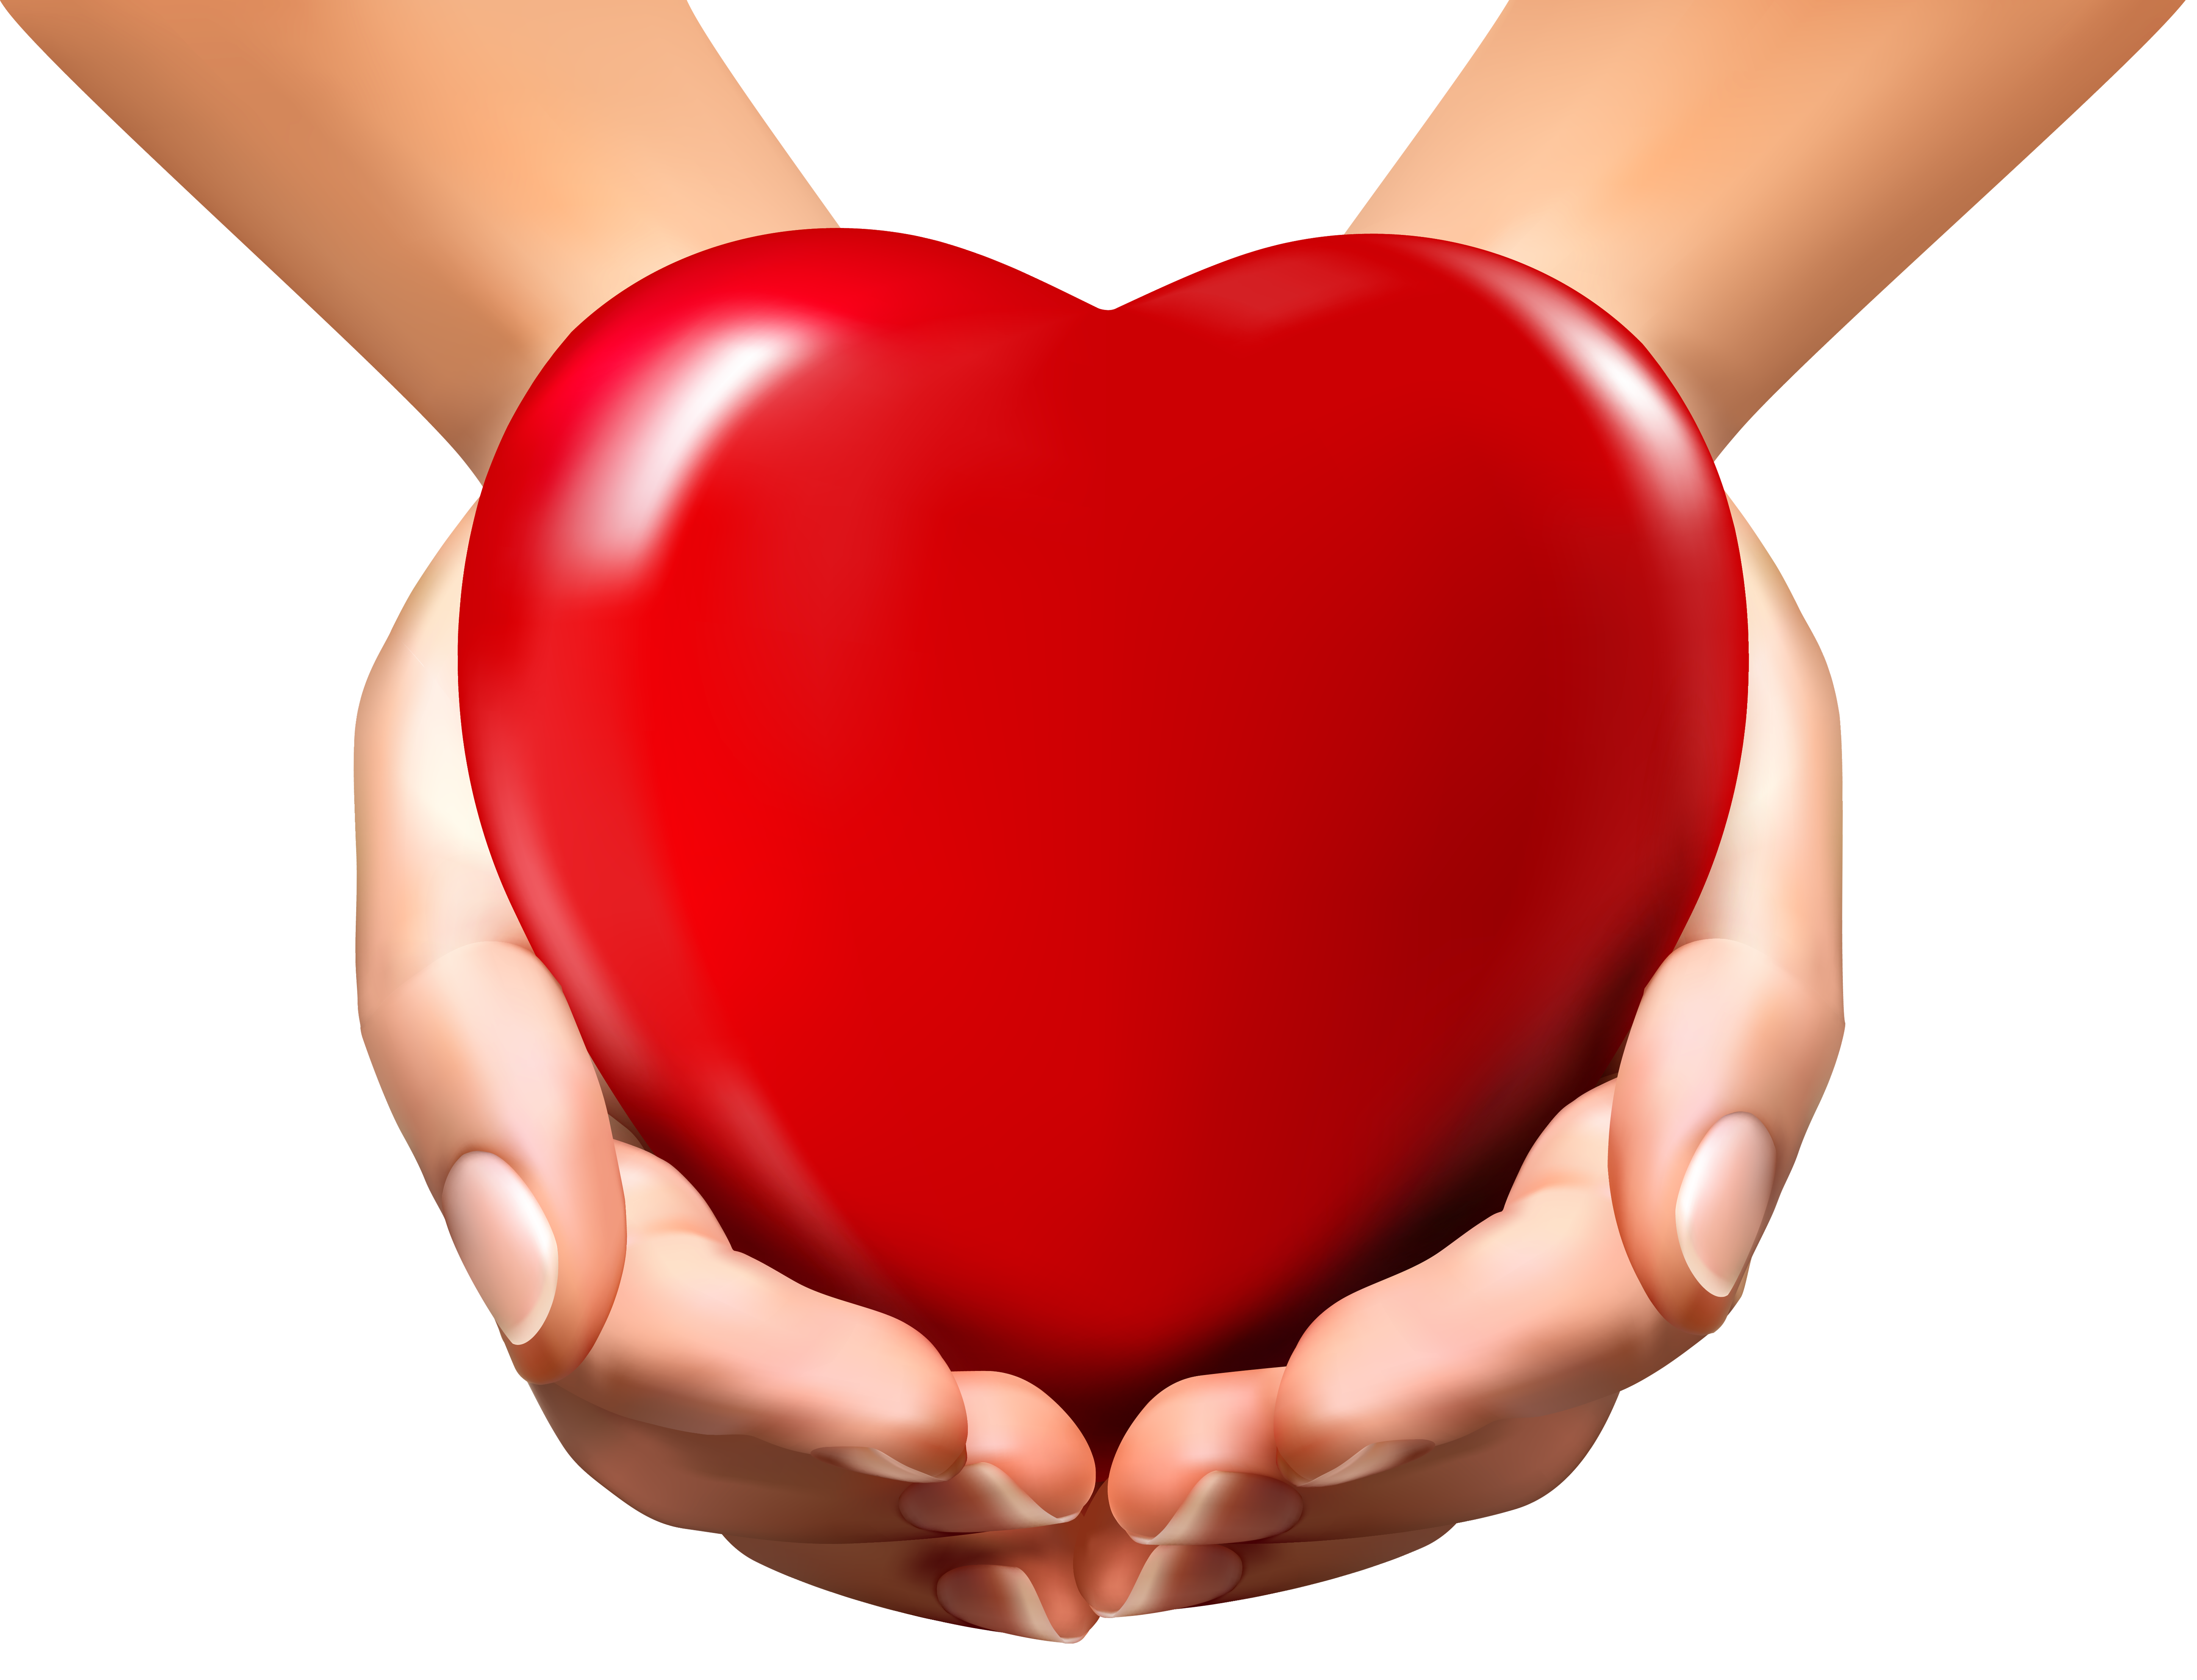 clip library String clipart hand holding. Online hands with heart